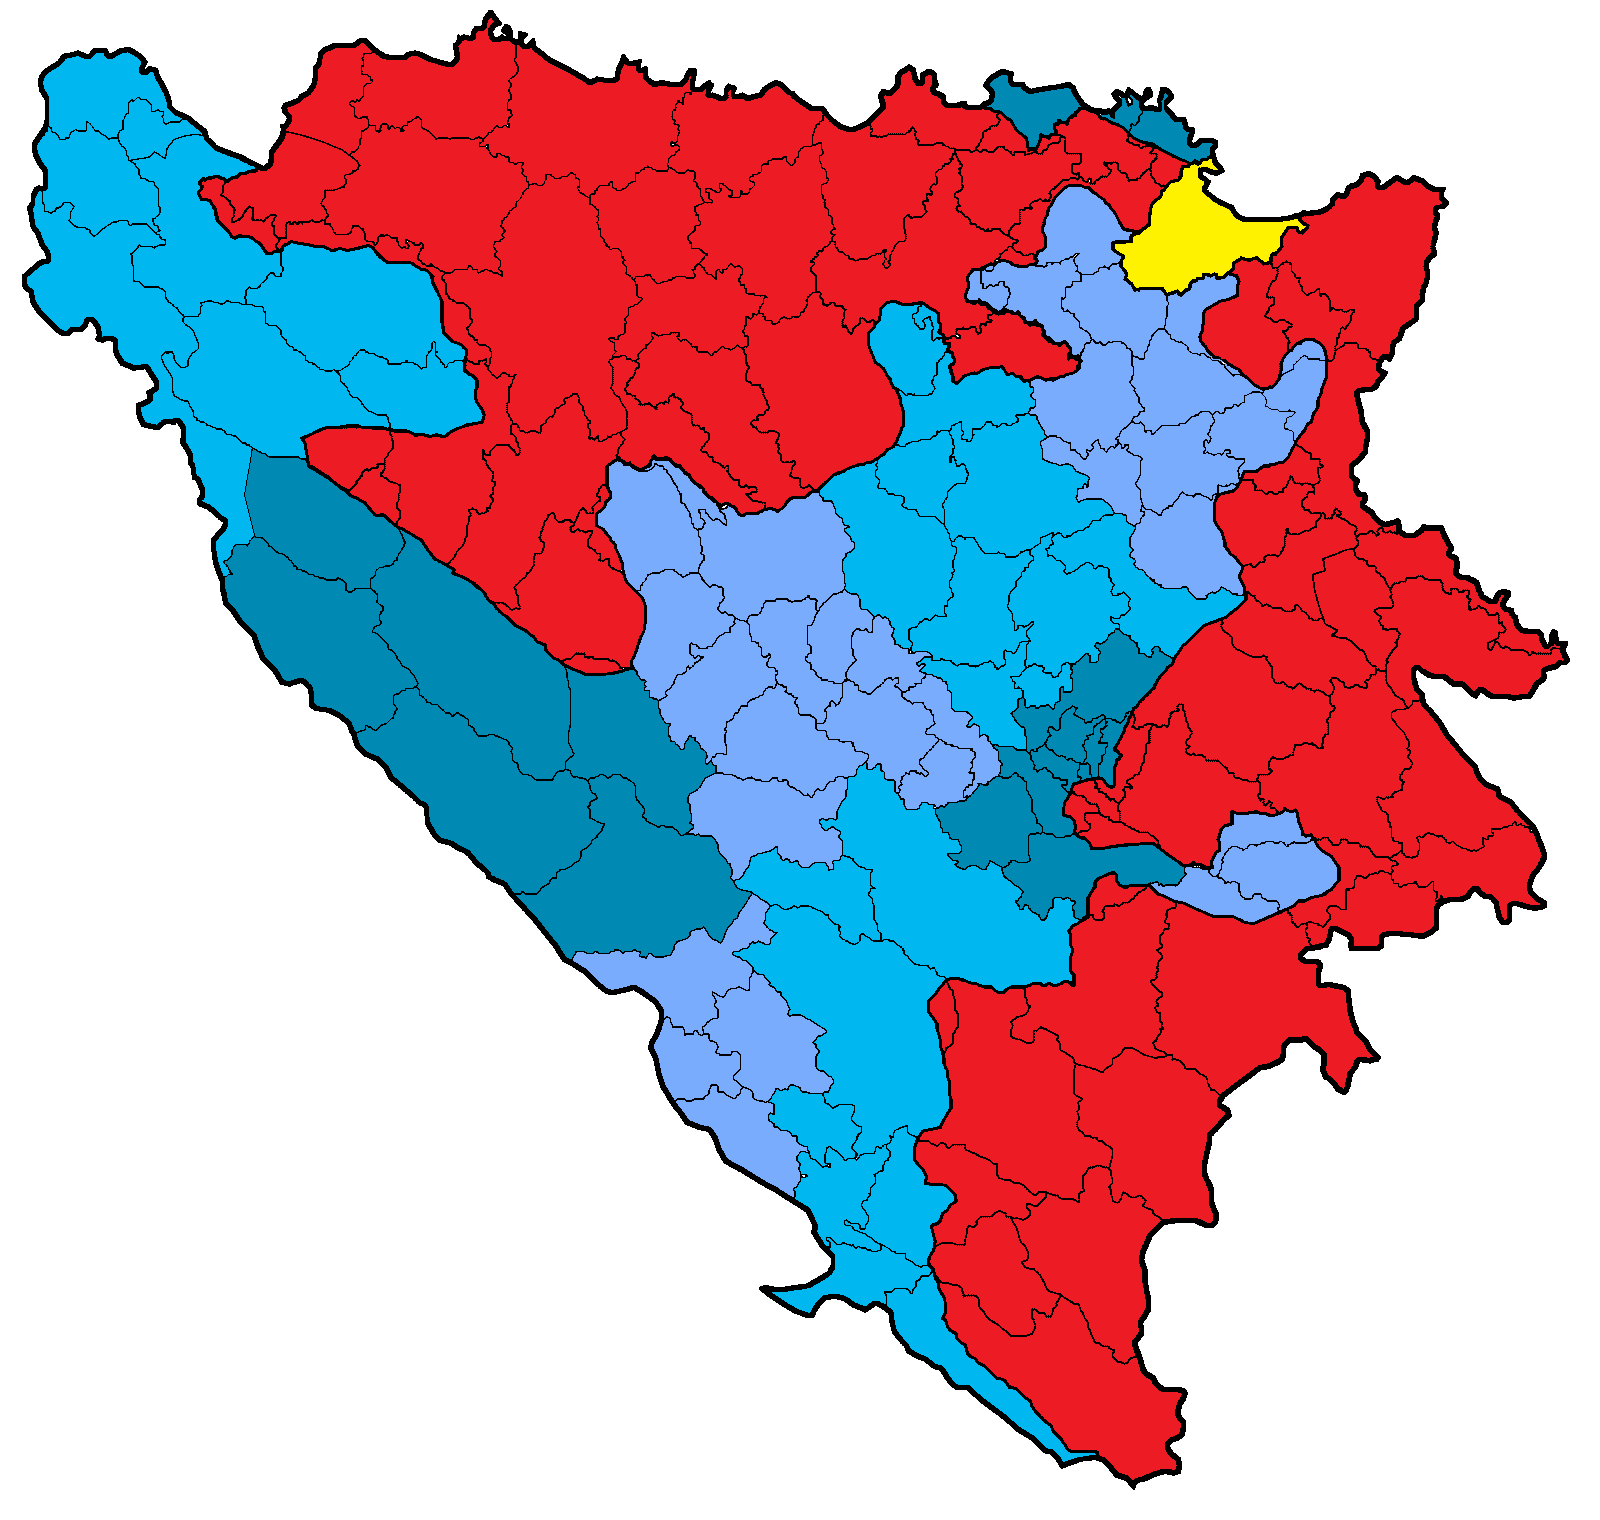 Datei:Bosnia and Herzegovina Political without text.png ...